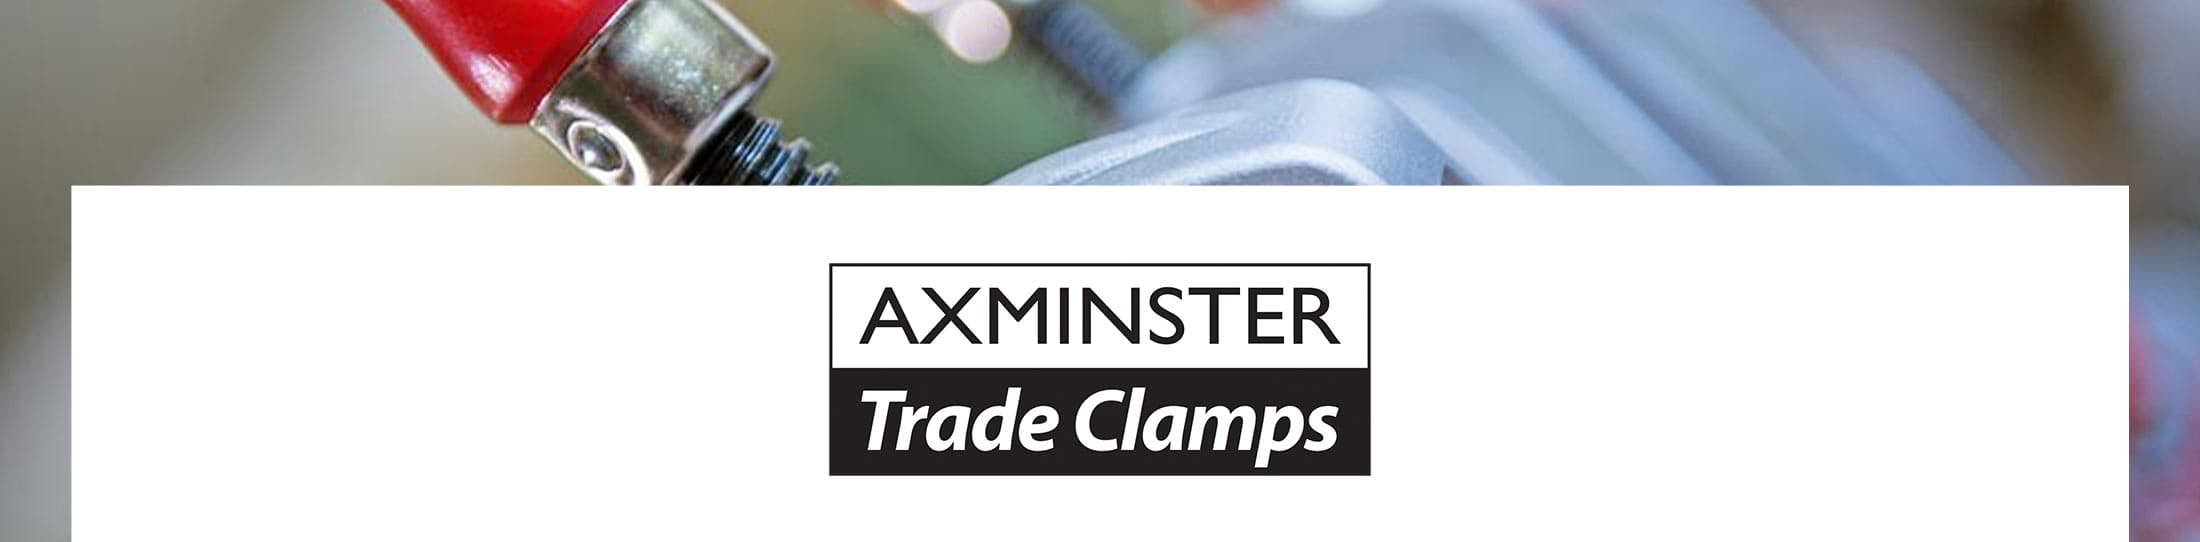 Axminster Trade Clamps